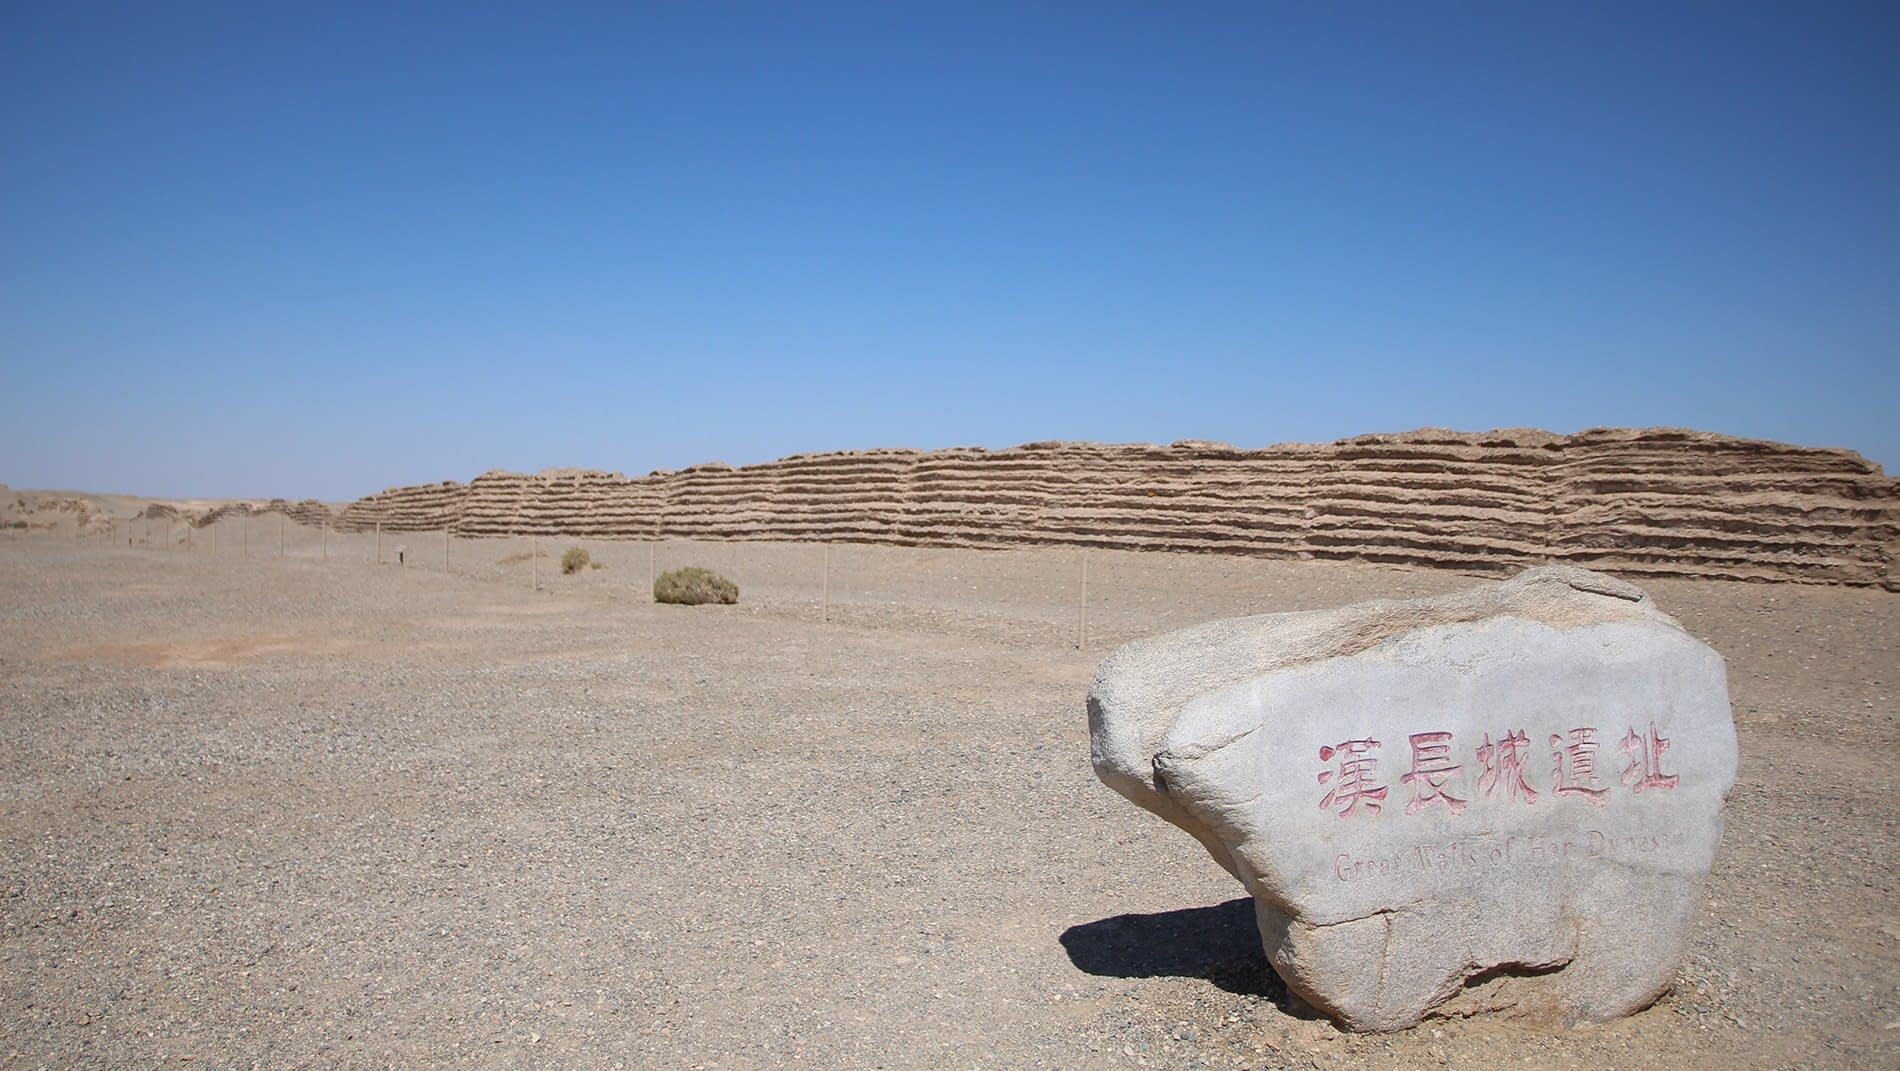 Ancient Section of the Great Wall~The Great Wall built during the Han dynasty from 127 to 100BCE was the longest stretch ever built, running from this section beyond Dunhuang all the way to the Korean peninsula.